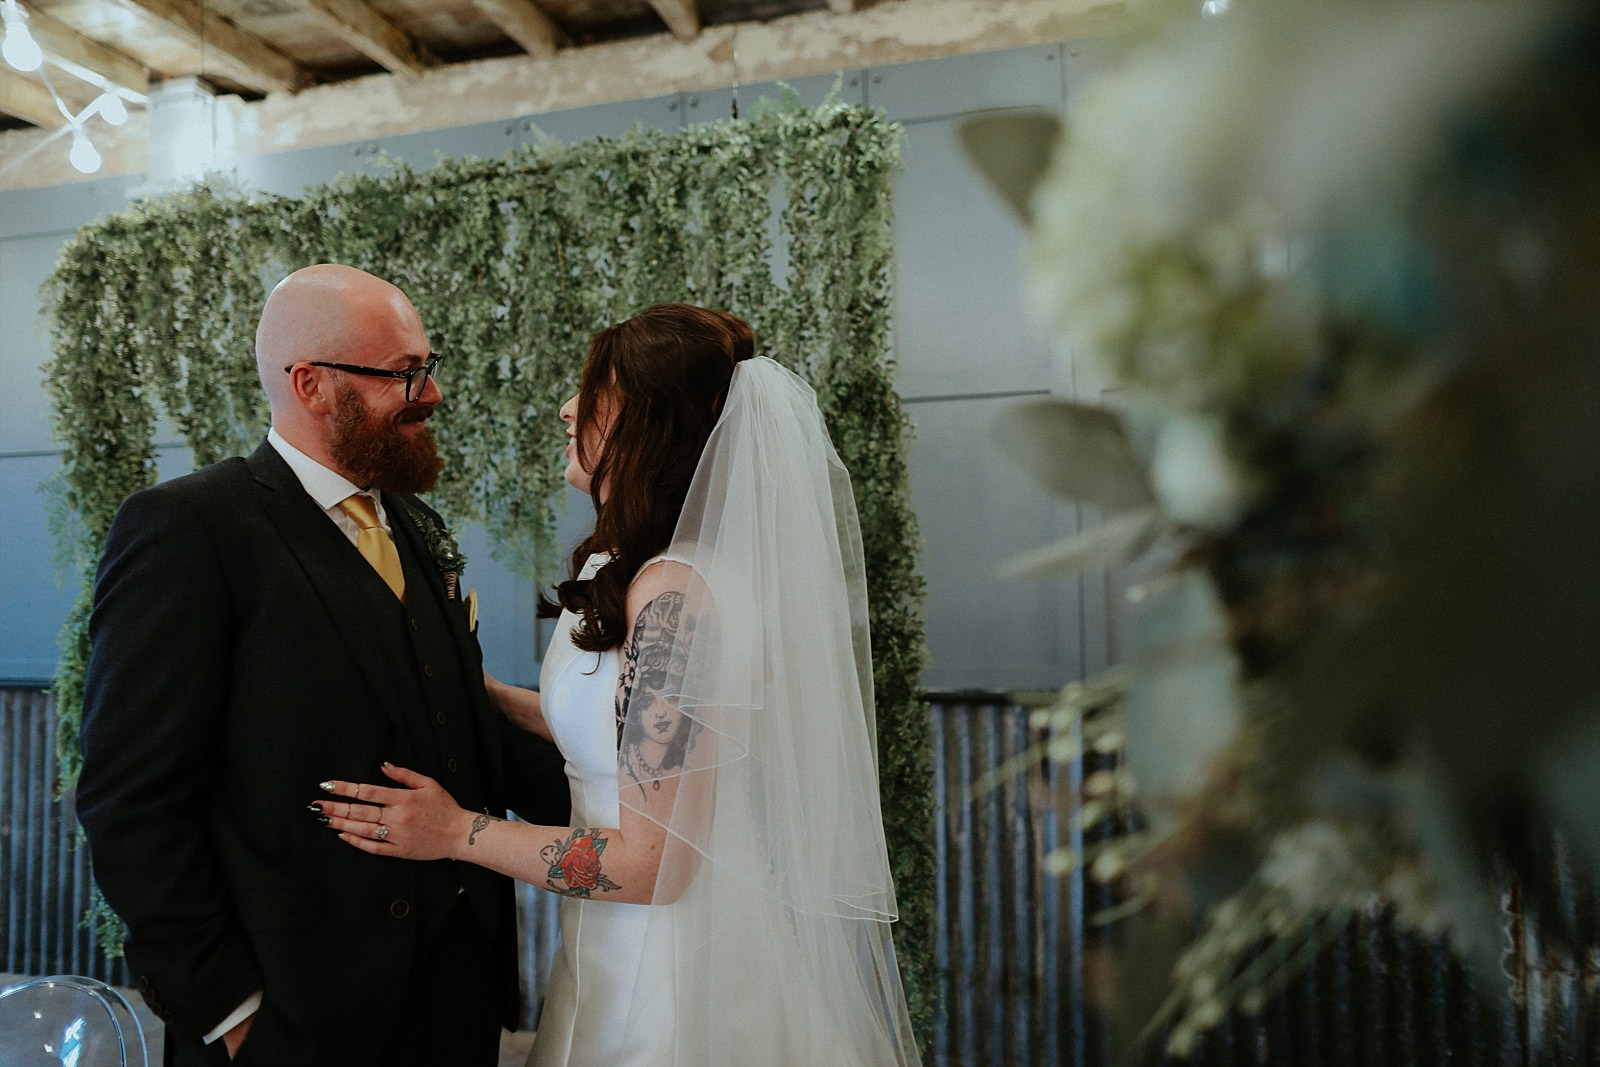 bride and groom together at an industrial wedding venue